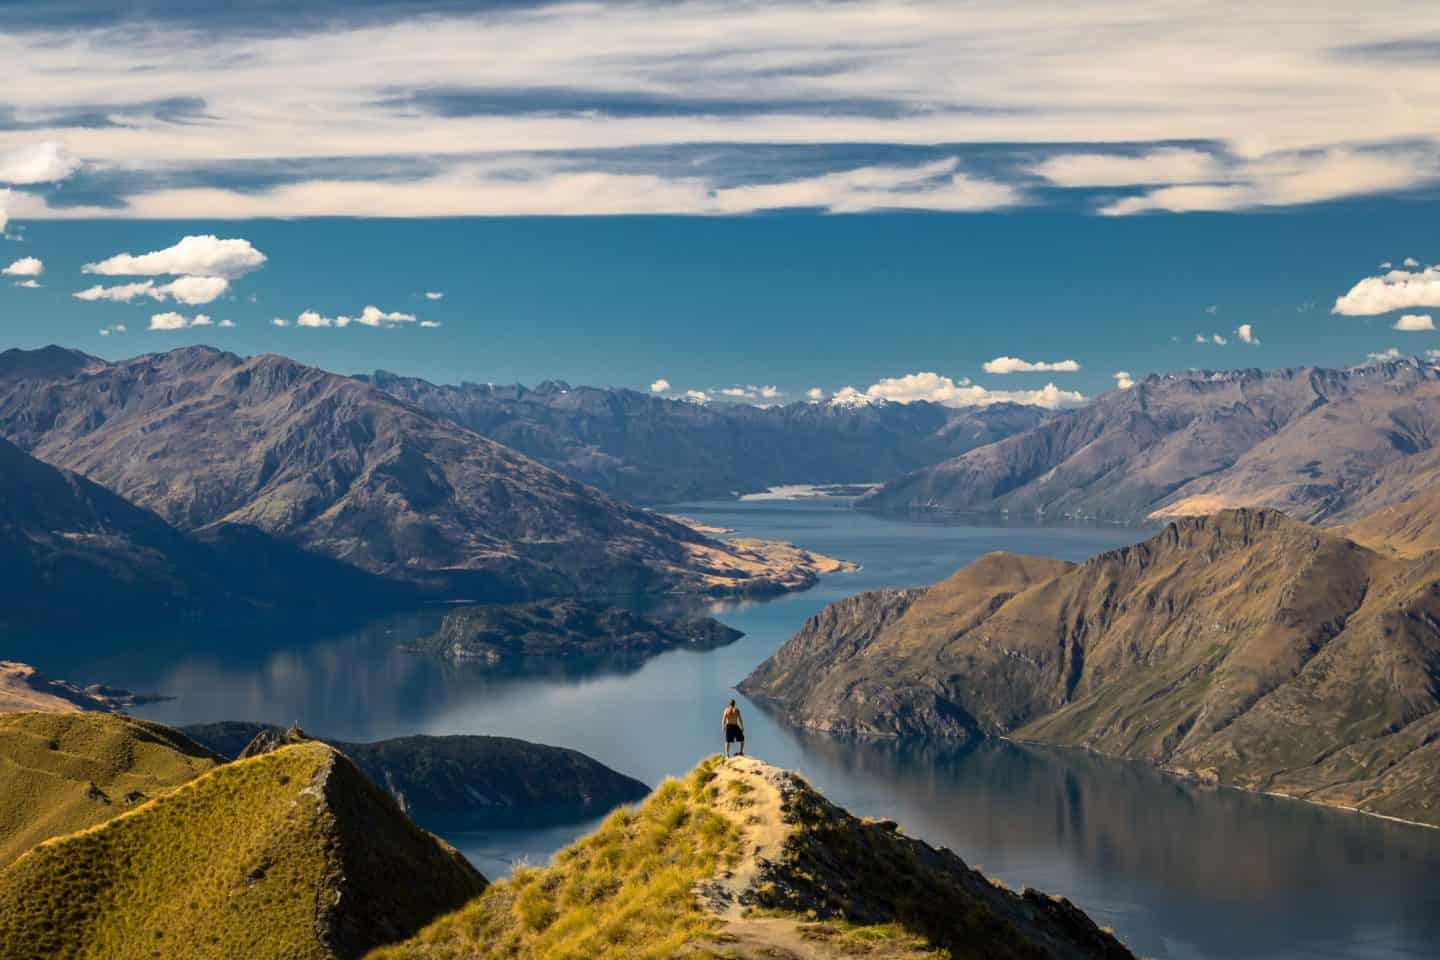 Compose your photo so the subject is centered above Lake Wanaka and appears to be on the edge of the world!